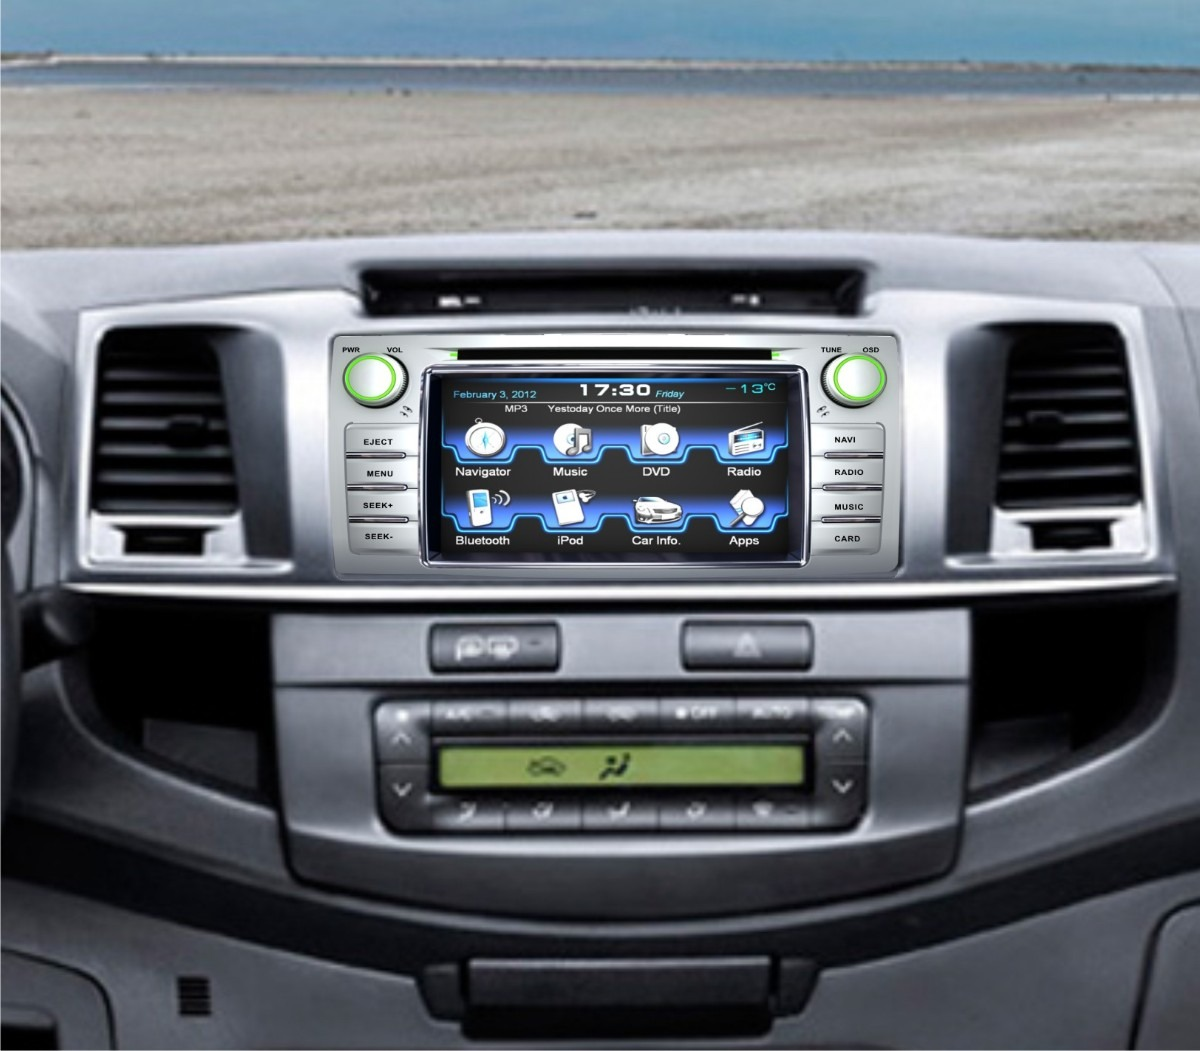 Rav4 Gps System reviews additionally 231879445970 as well 325830 Toyota Fortuner Dvd Gps in addition 719 Autoradio Gps Android 61 Toyota Rav4 De 2006 A 2012 besides 222687303918. on gps radio for toyota rav4 2012